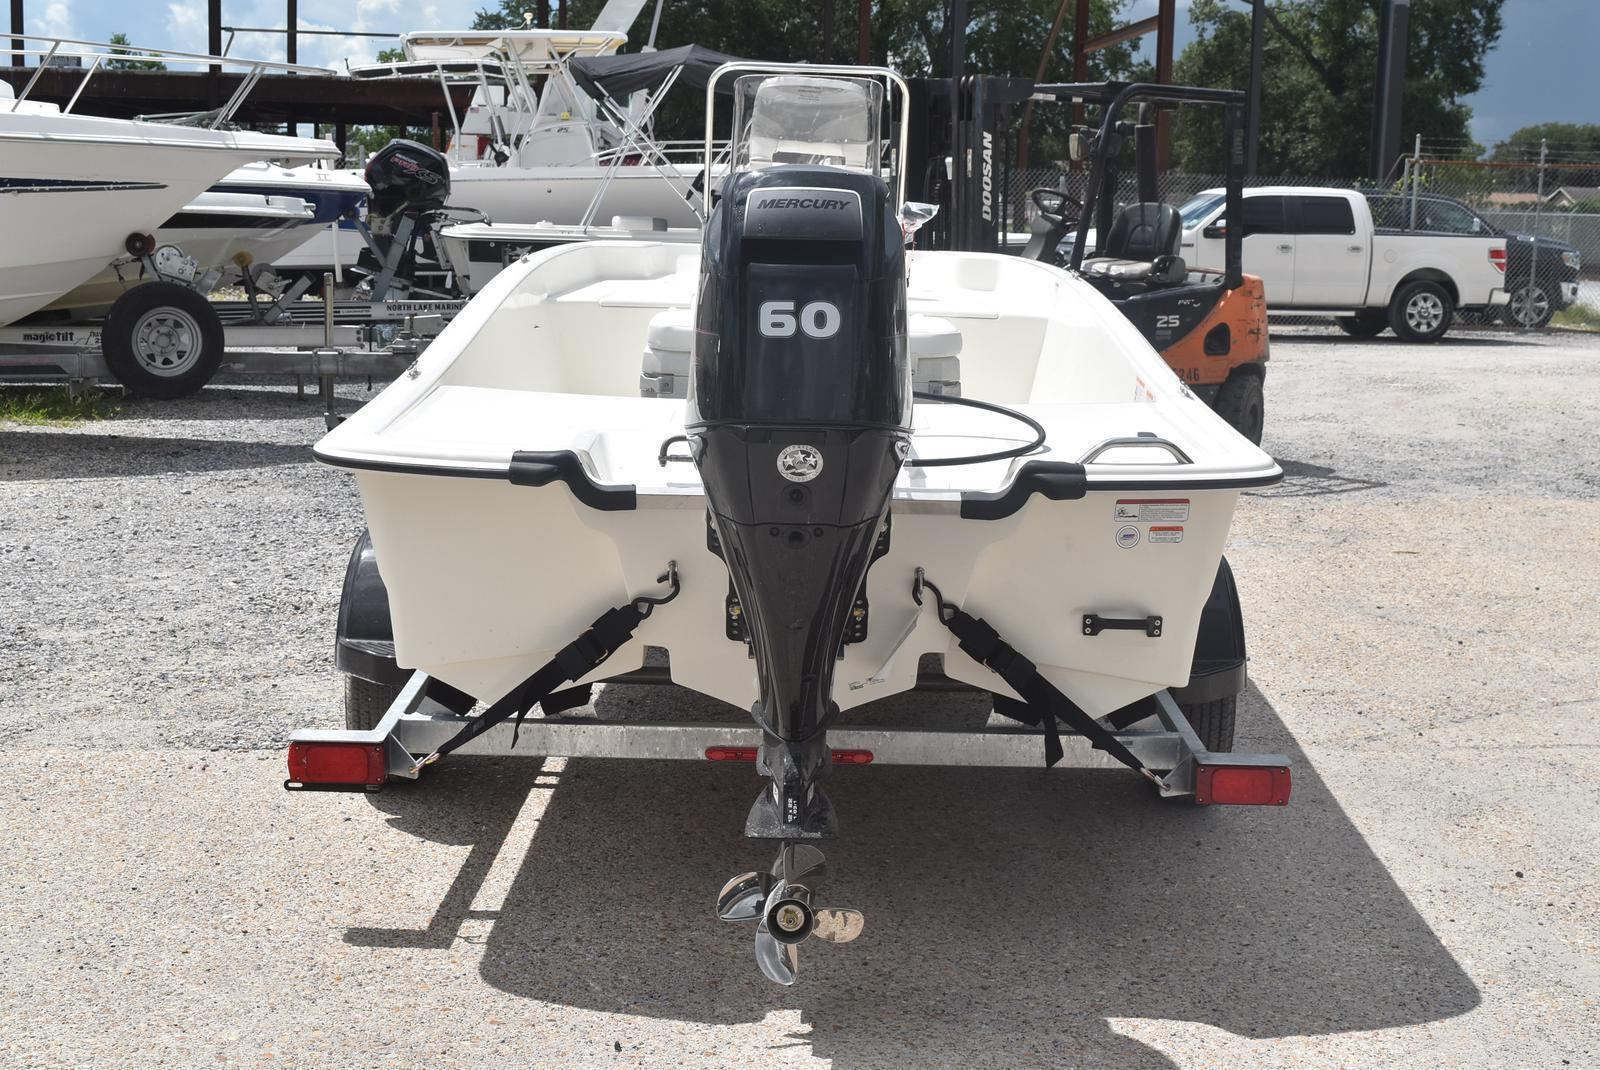 2020 Mako boat for sale, model of the boat is Pro Skiff 17, 75 ELPT & Image # 570 of 702